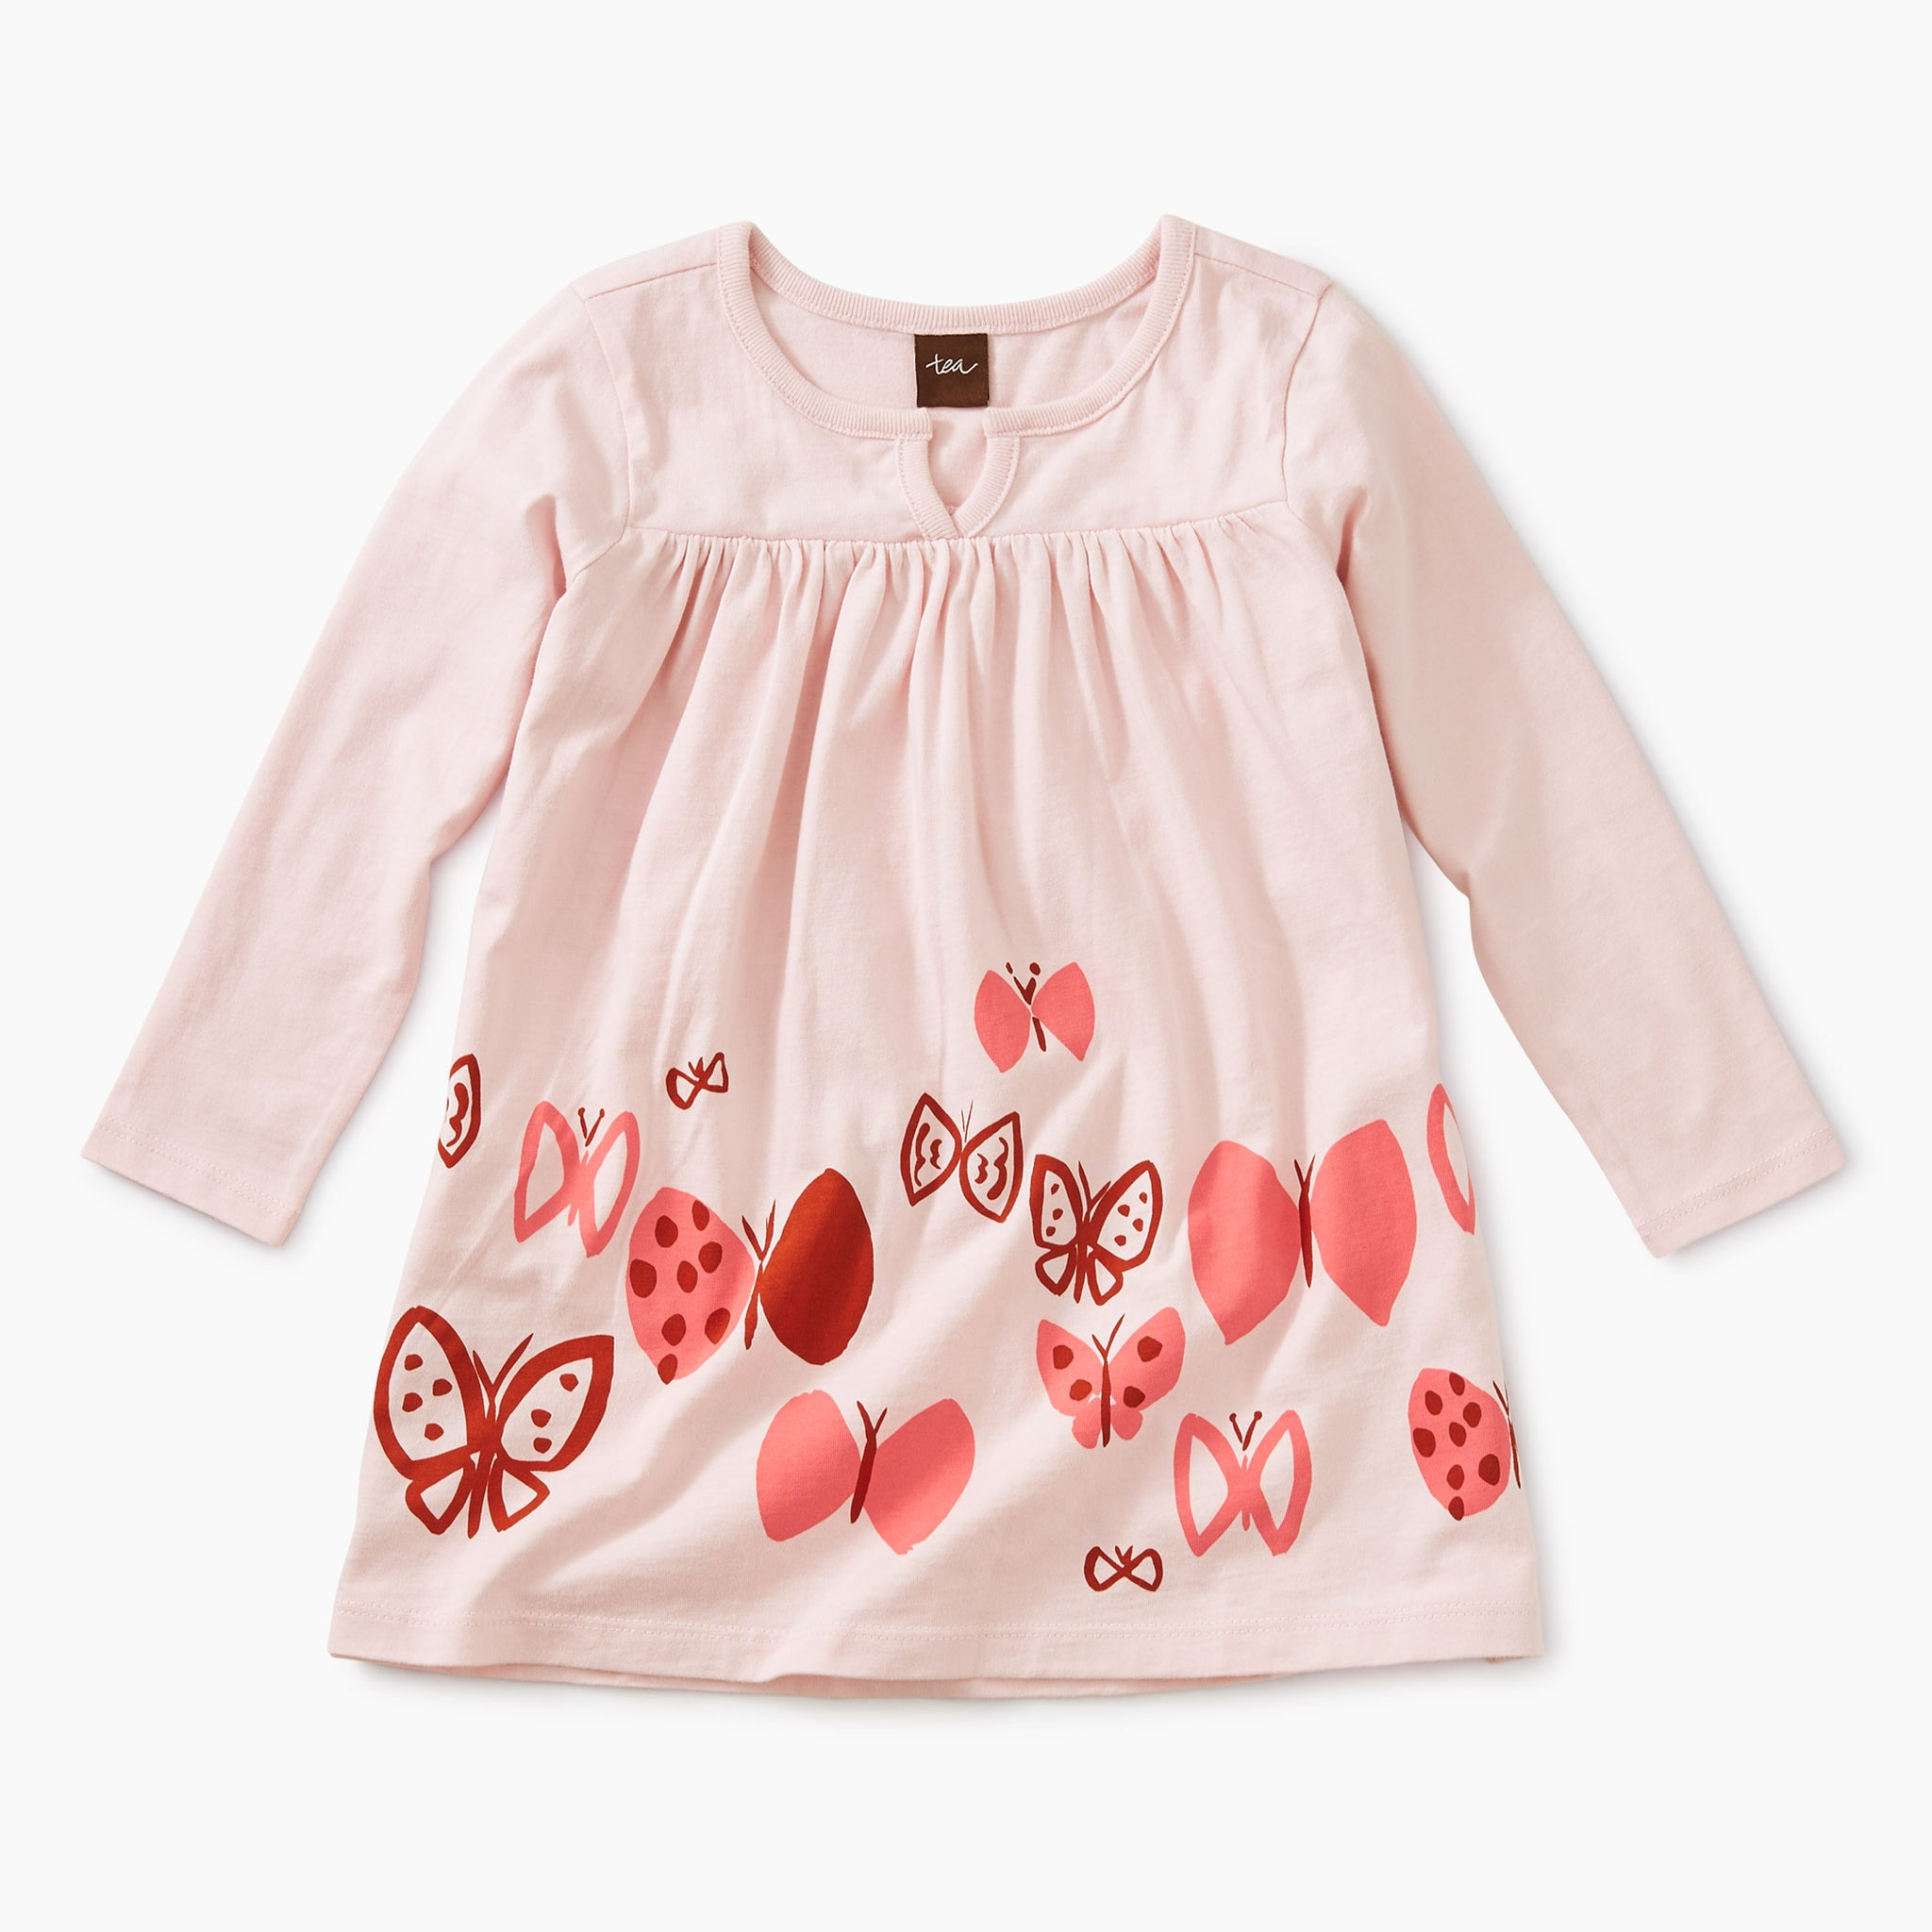 Butterflies Graphic Dress - Pink Cashmere